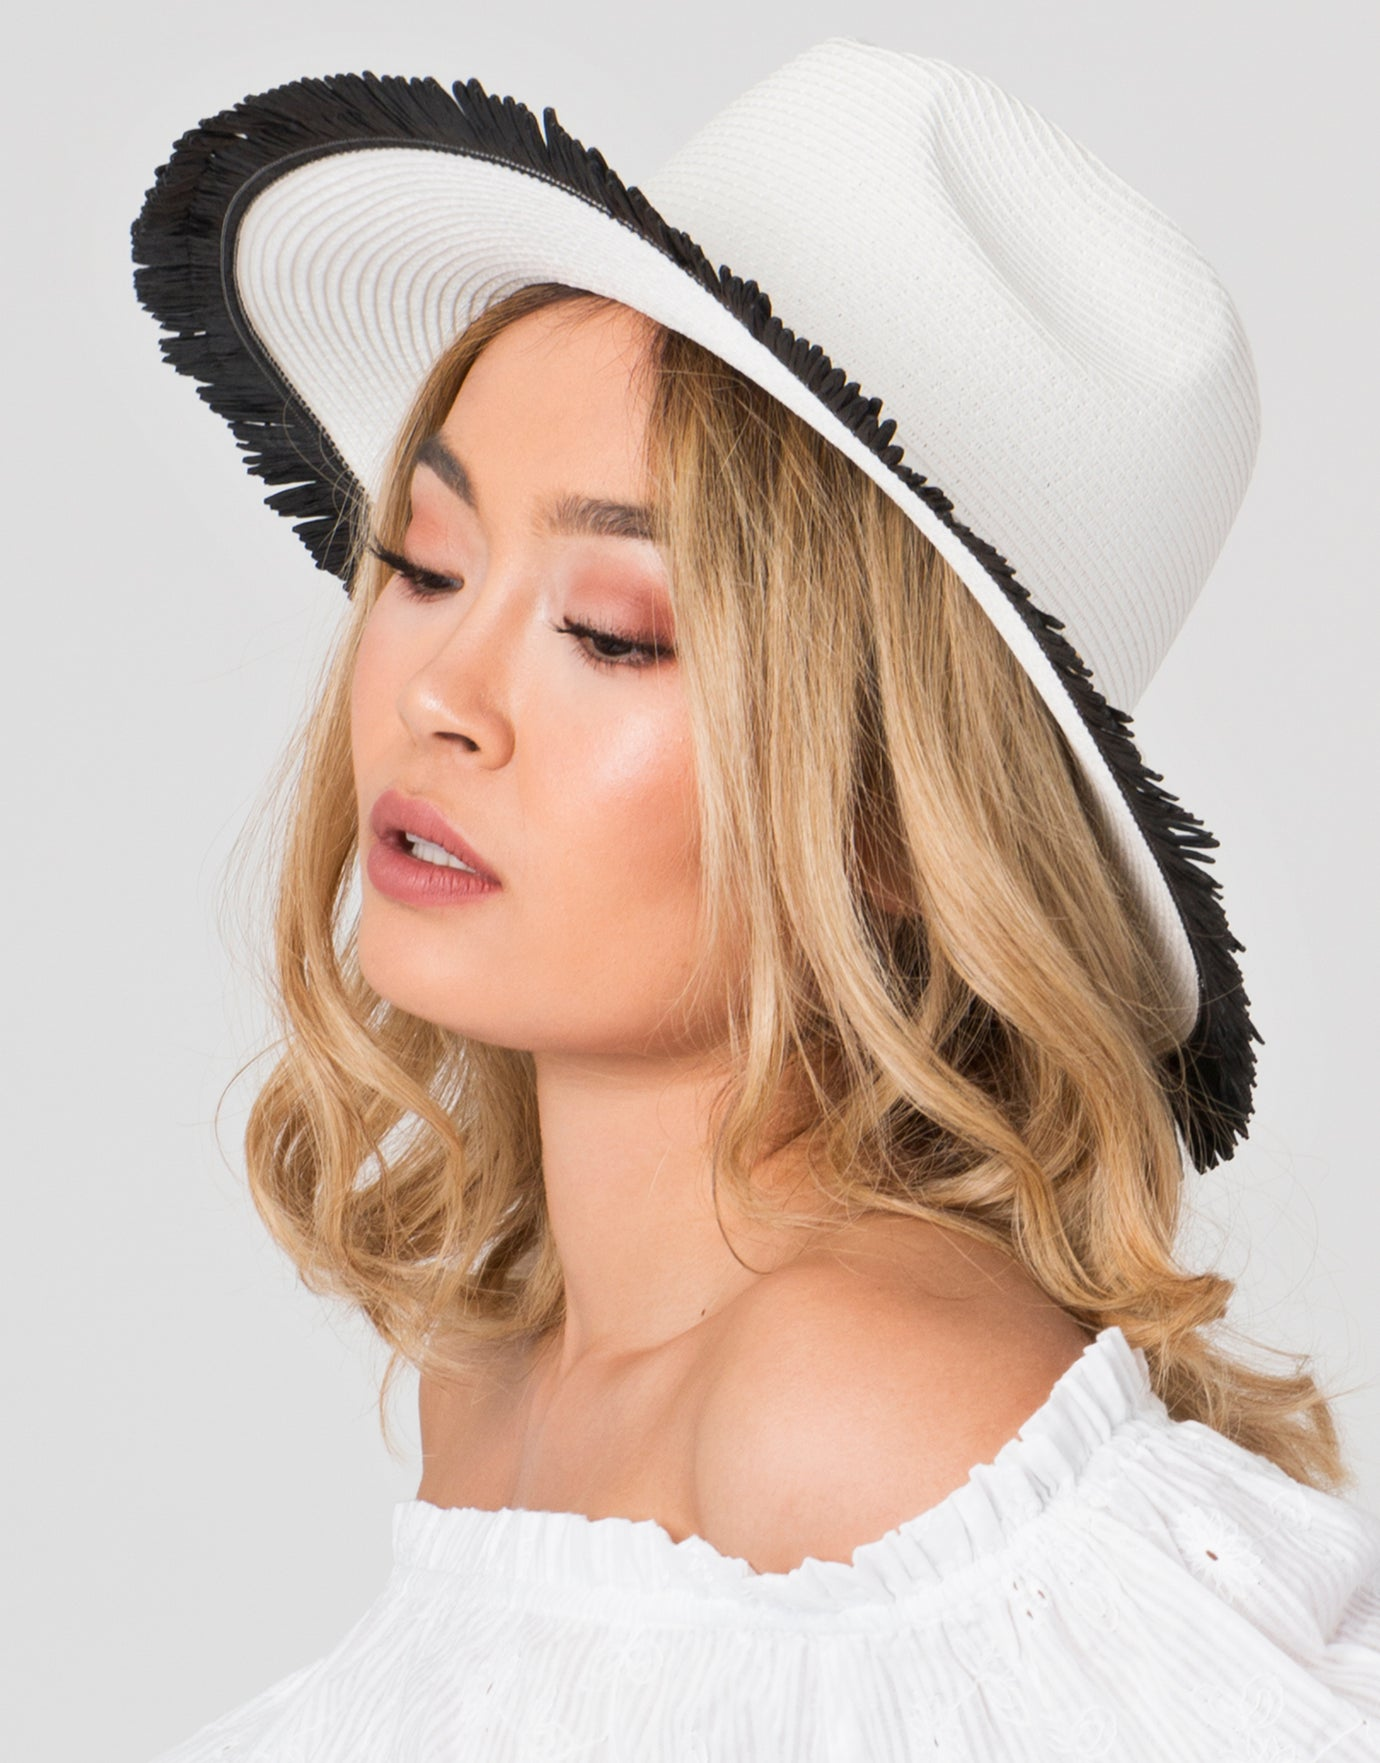 Pia Rossini Cira Beach Hat - White/Black